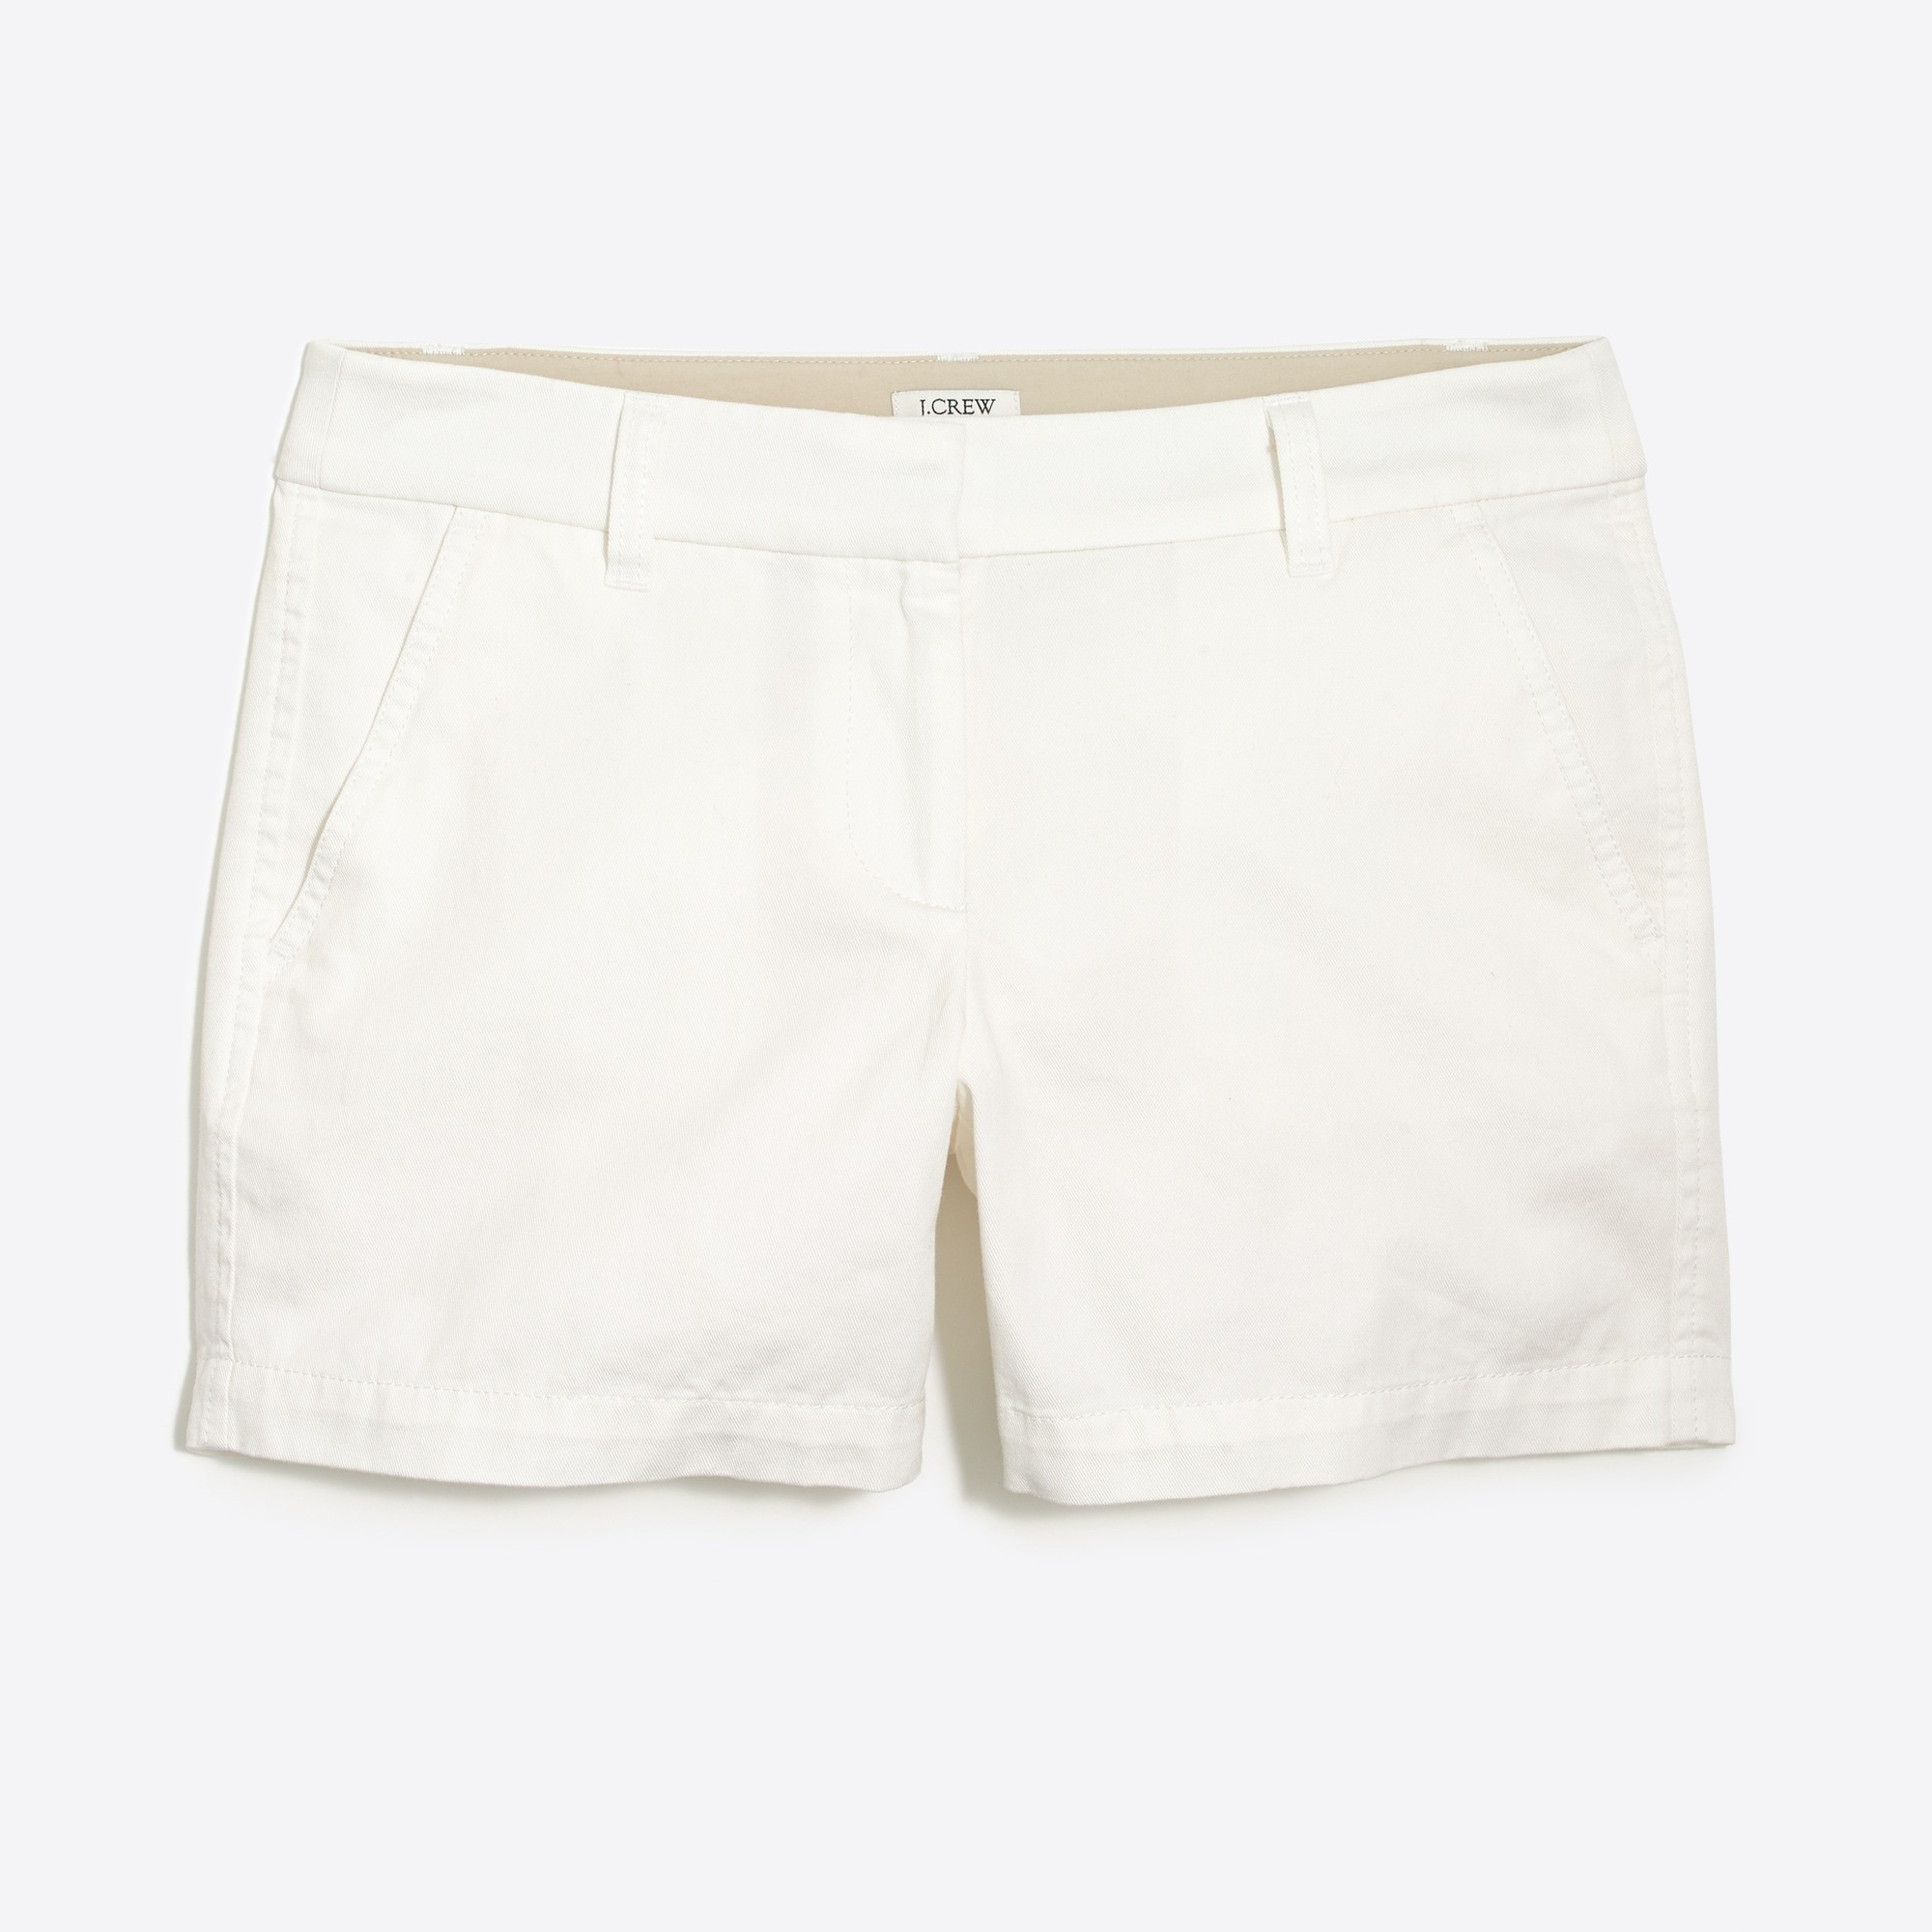 "Image 2 for 5"" chino short"